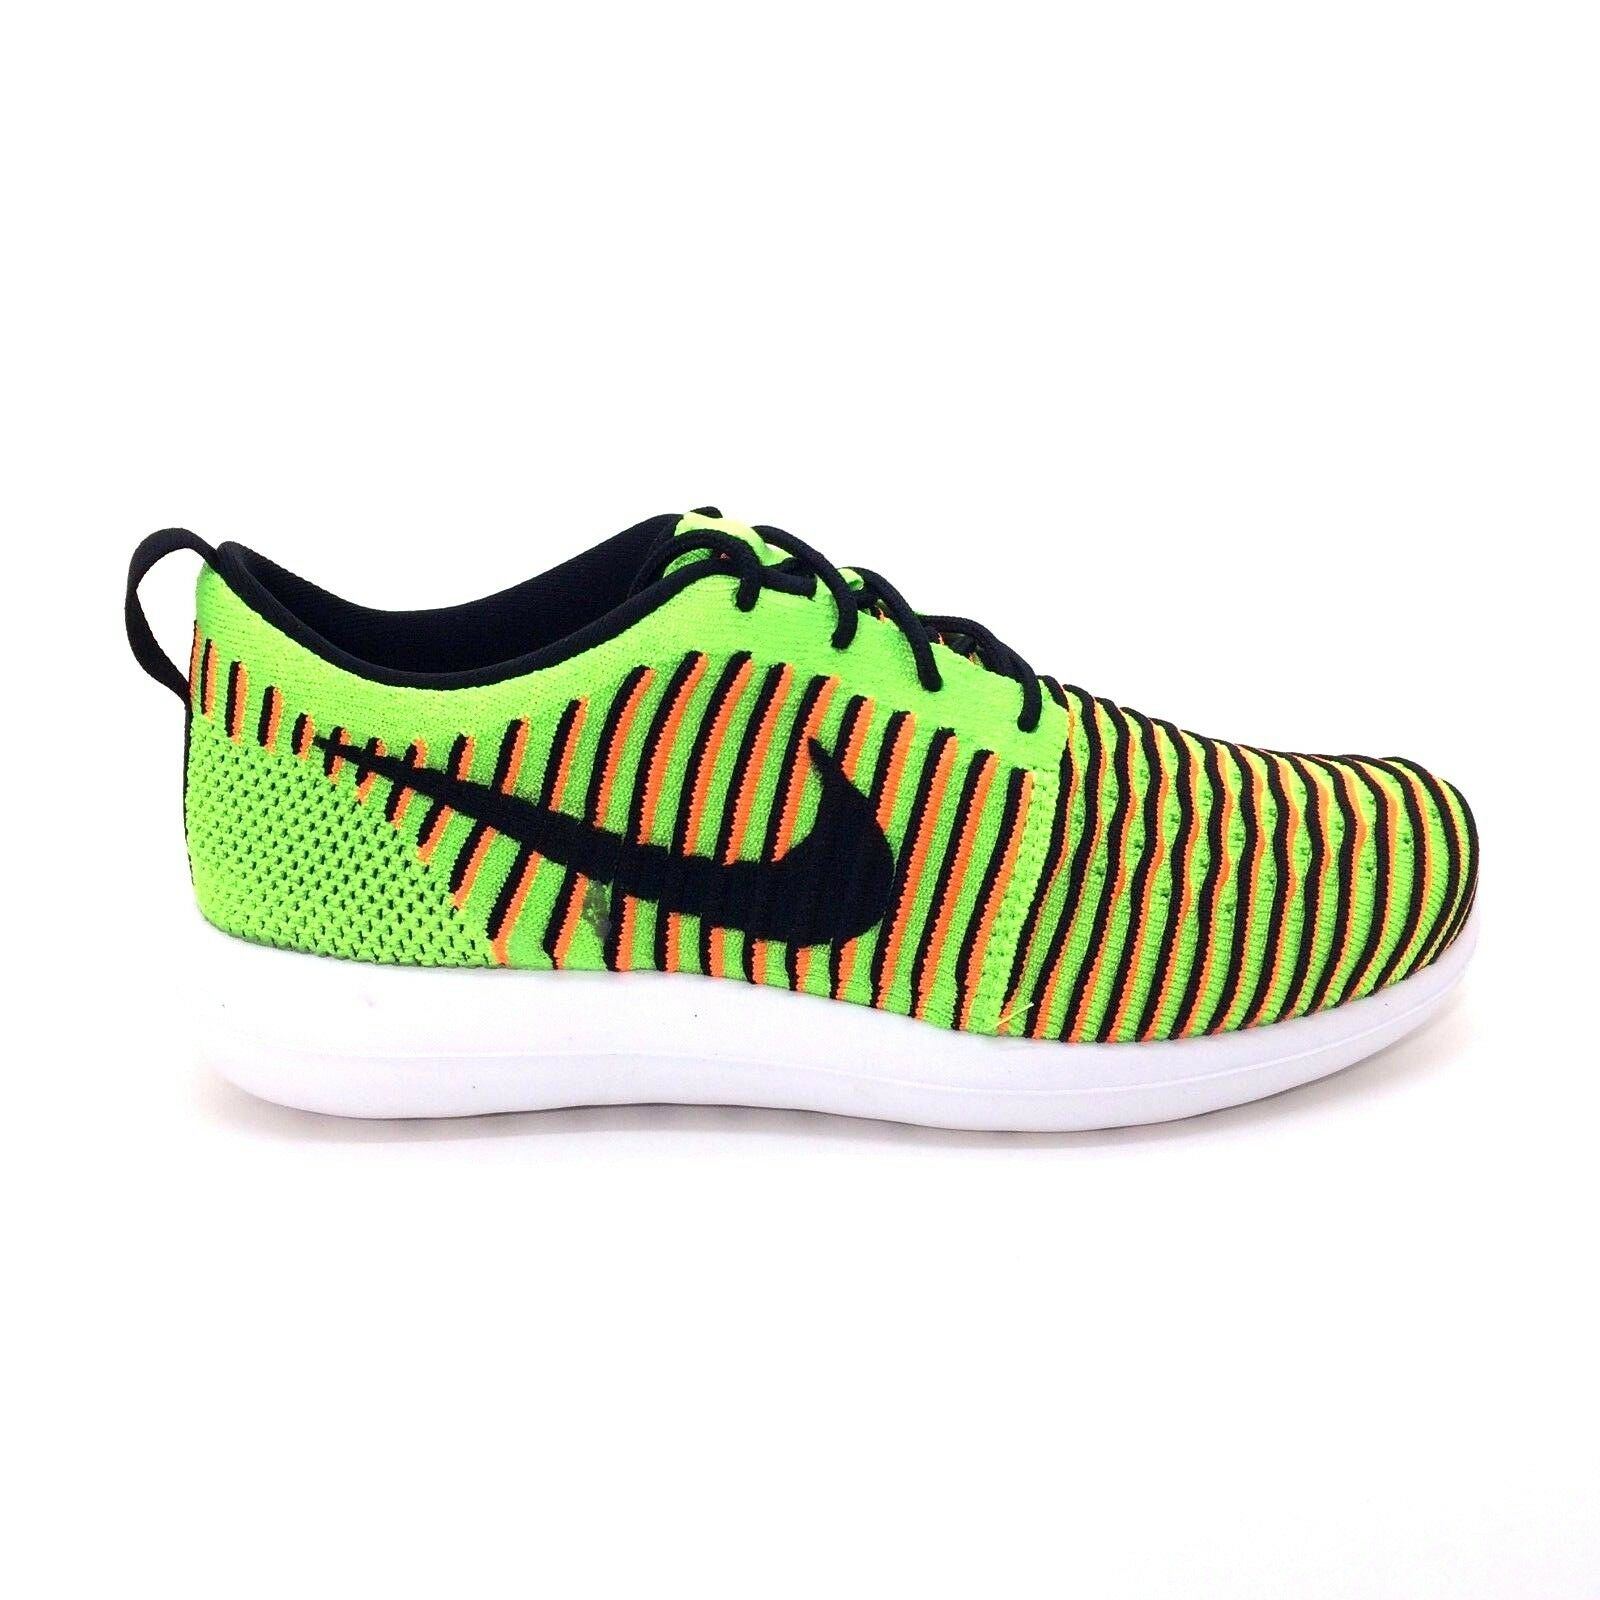 e06d1edf09a20 Buy Nike Roshe Two Flyknit GS Running Shoes Youth 6y Electric Green ...